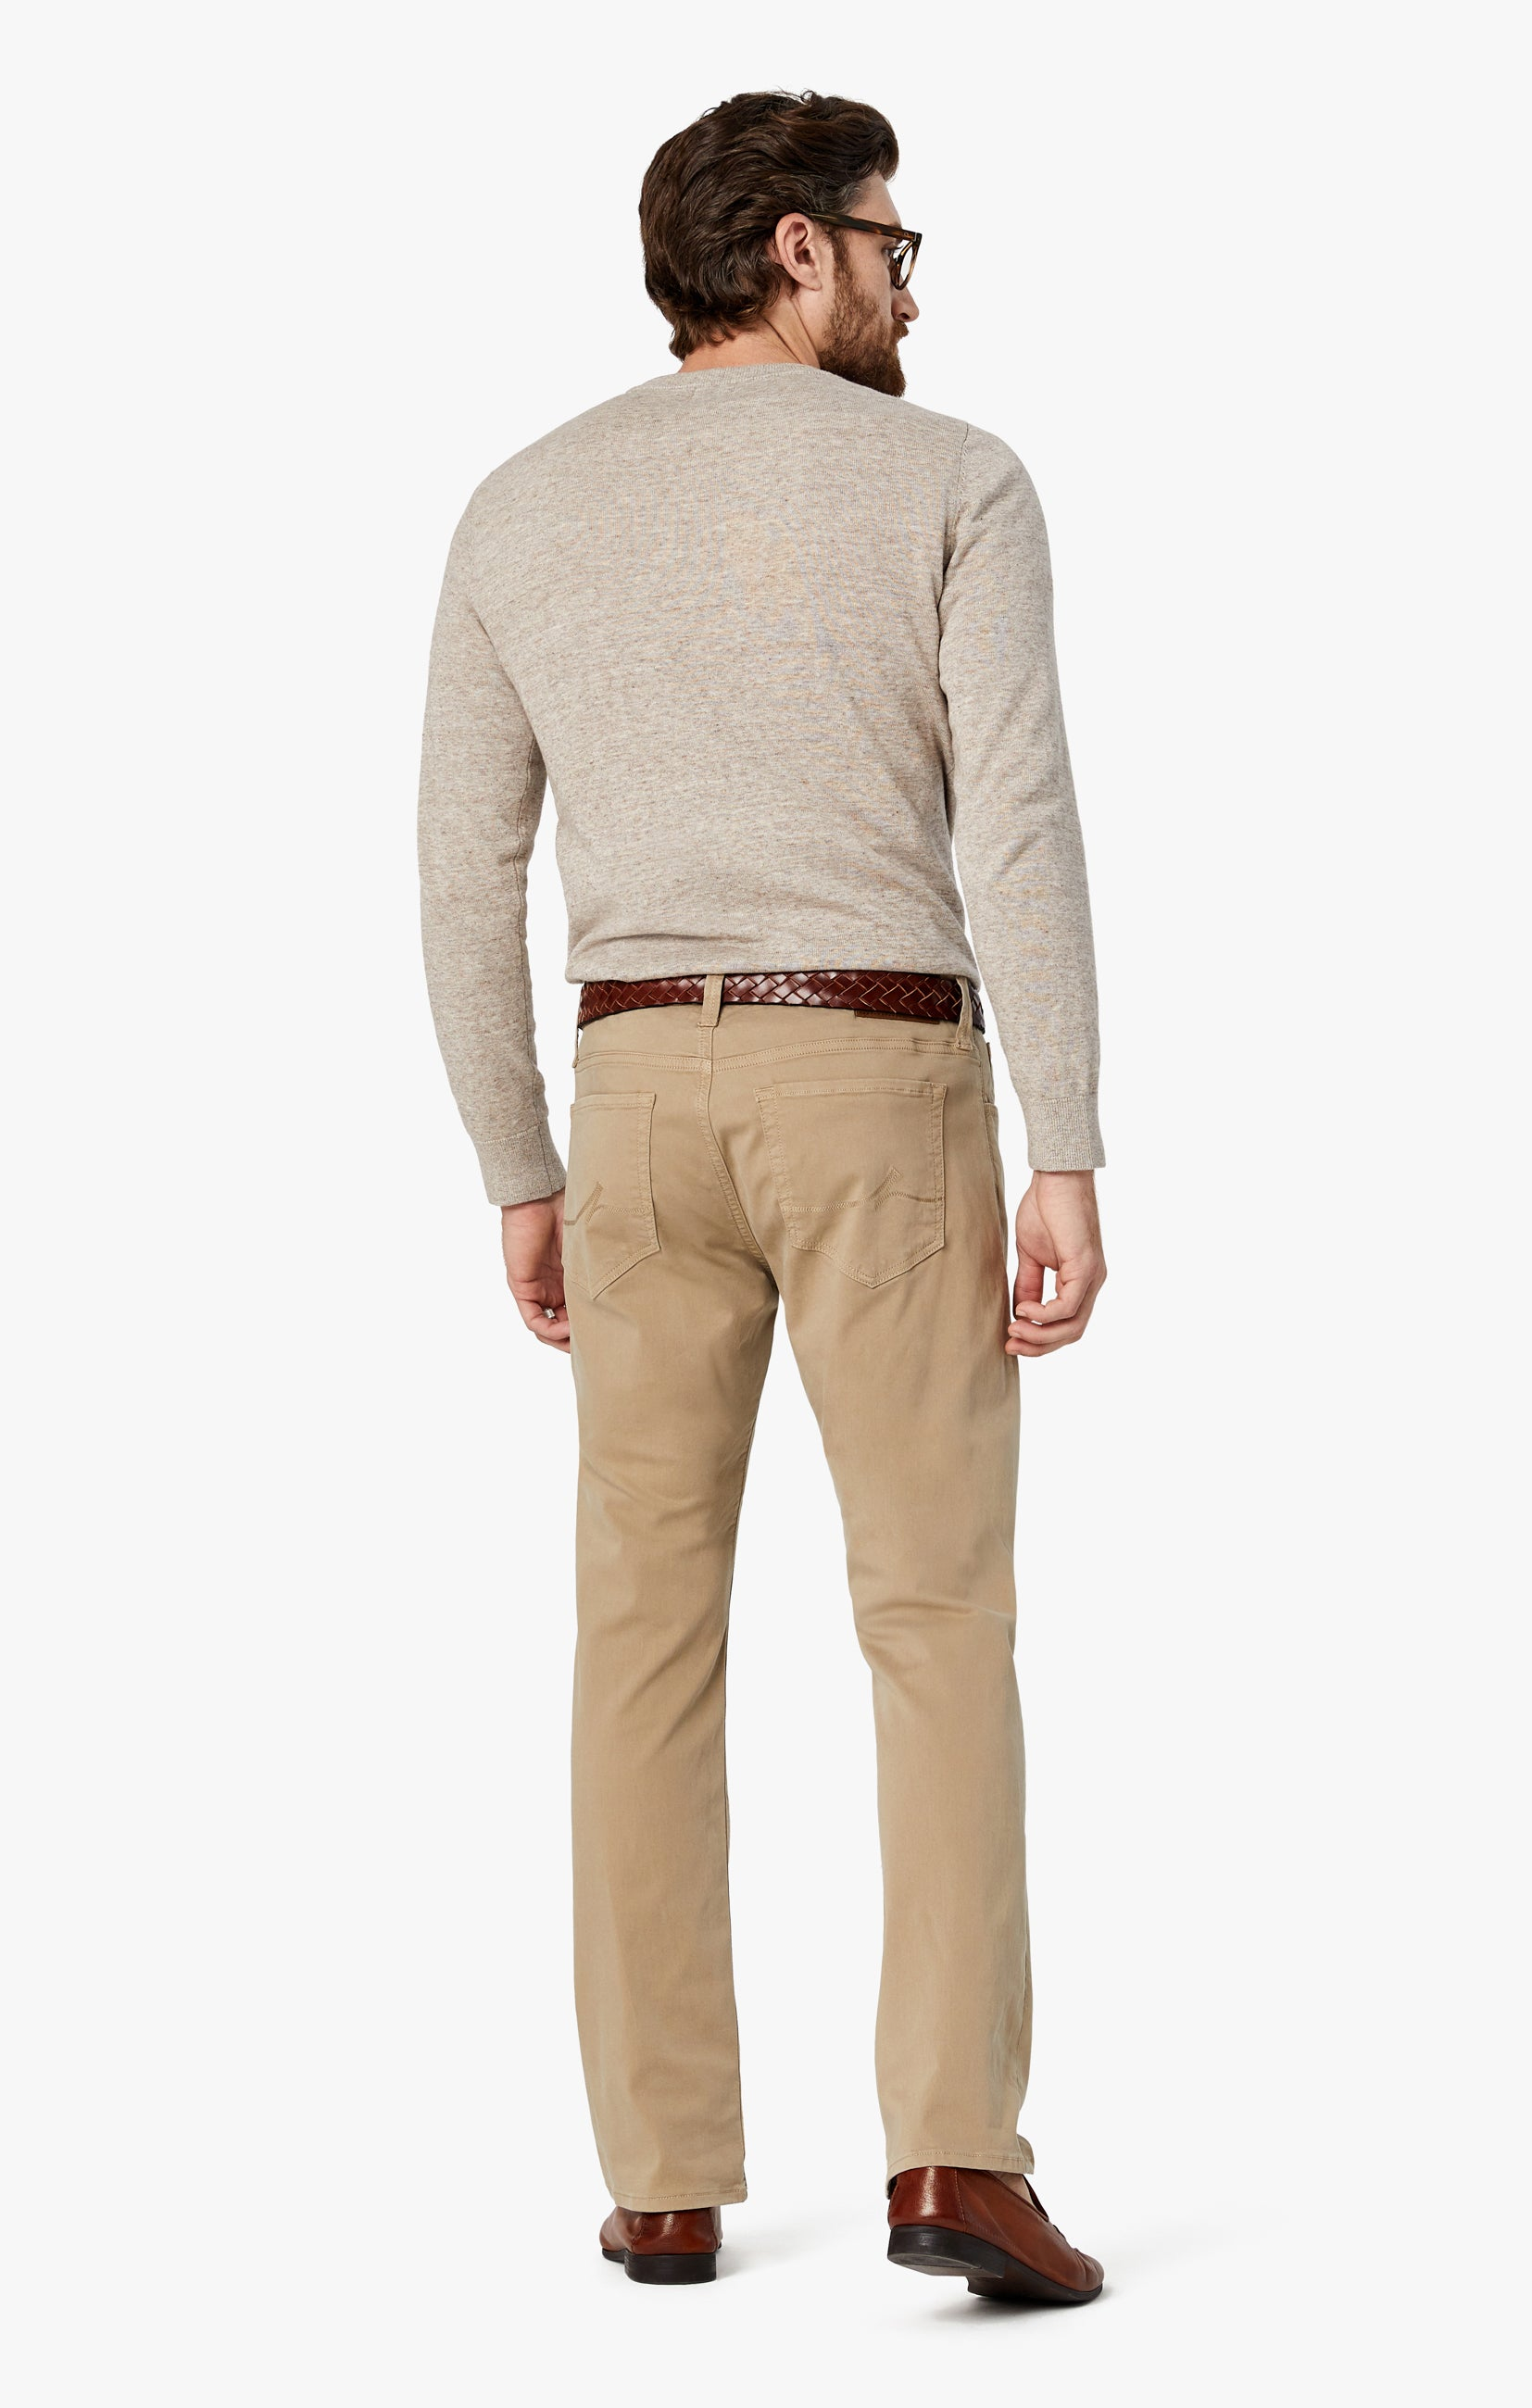 Courage Straight Leg Pants in Sand Twill Image 9